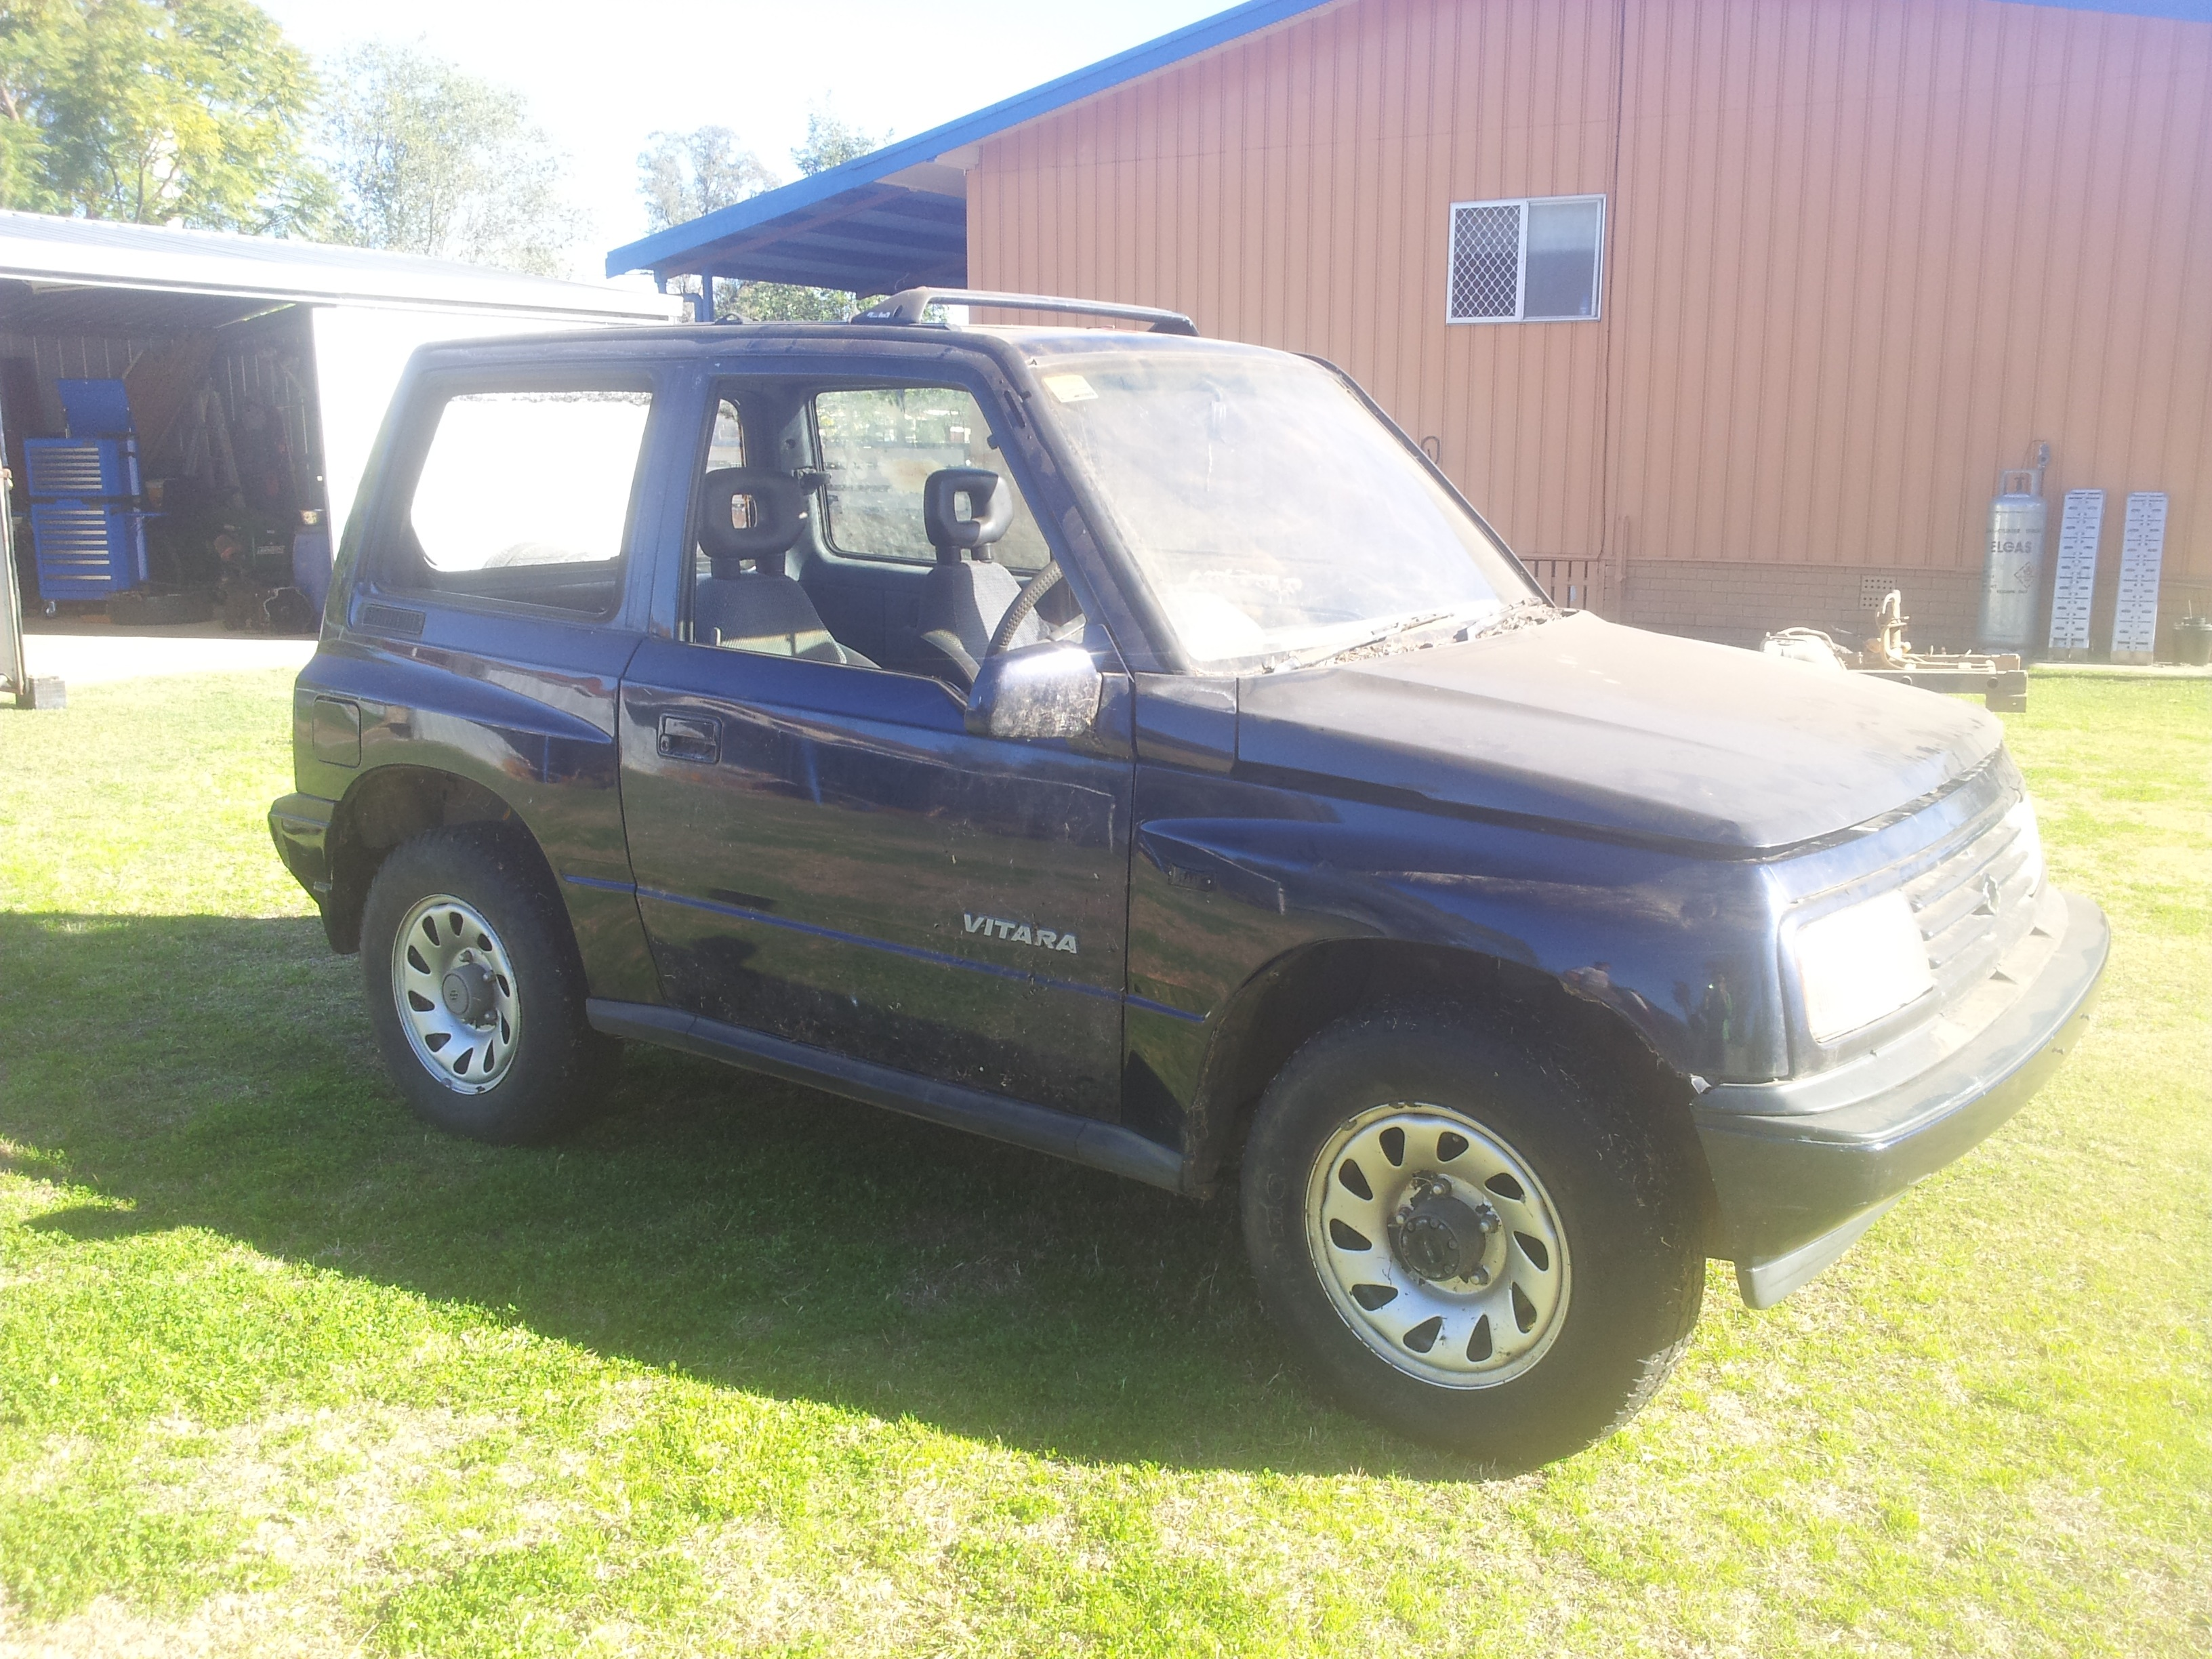 1993 suzuki vitara jlx 4x4 for sale or swap qld darling downs 2268709. Black Bedroom Furniture Sets. Home Design Ideas